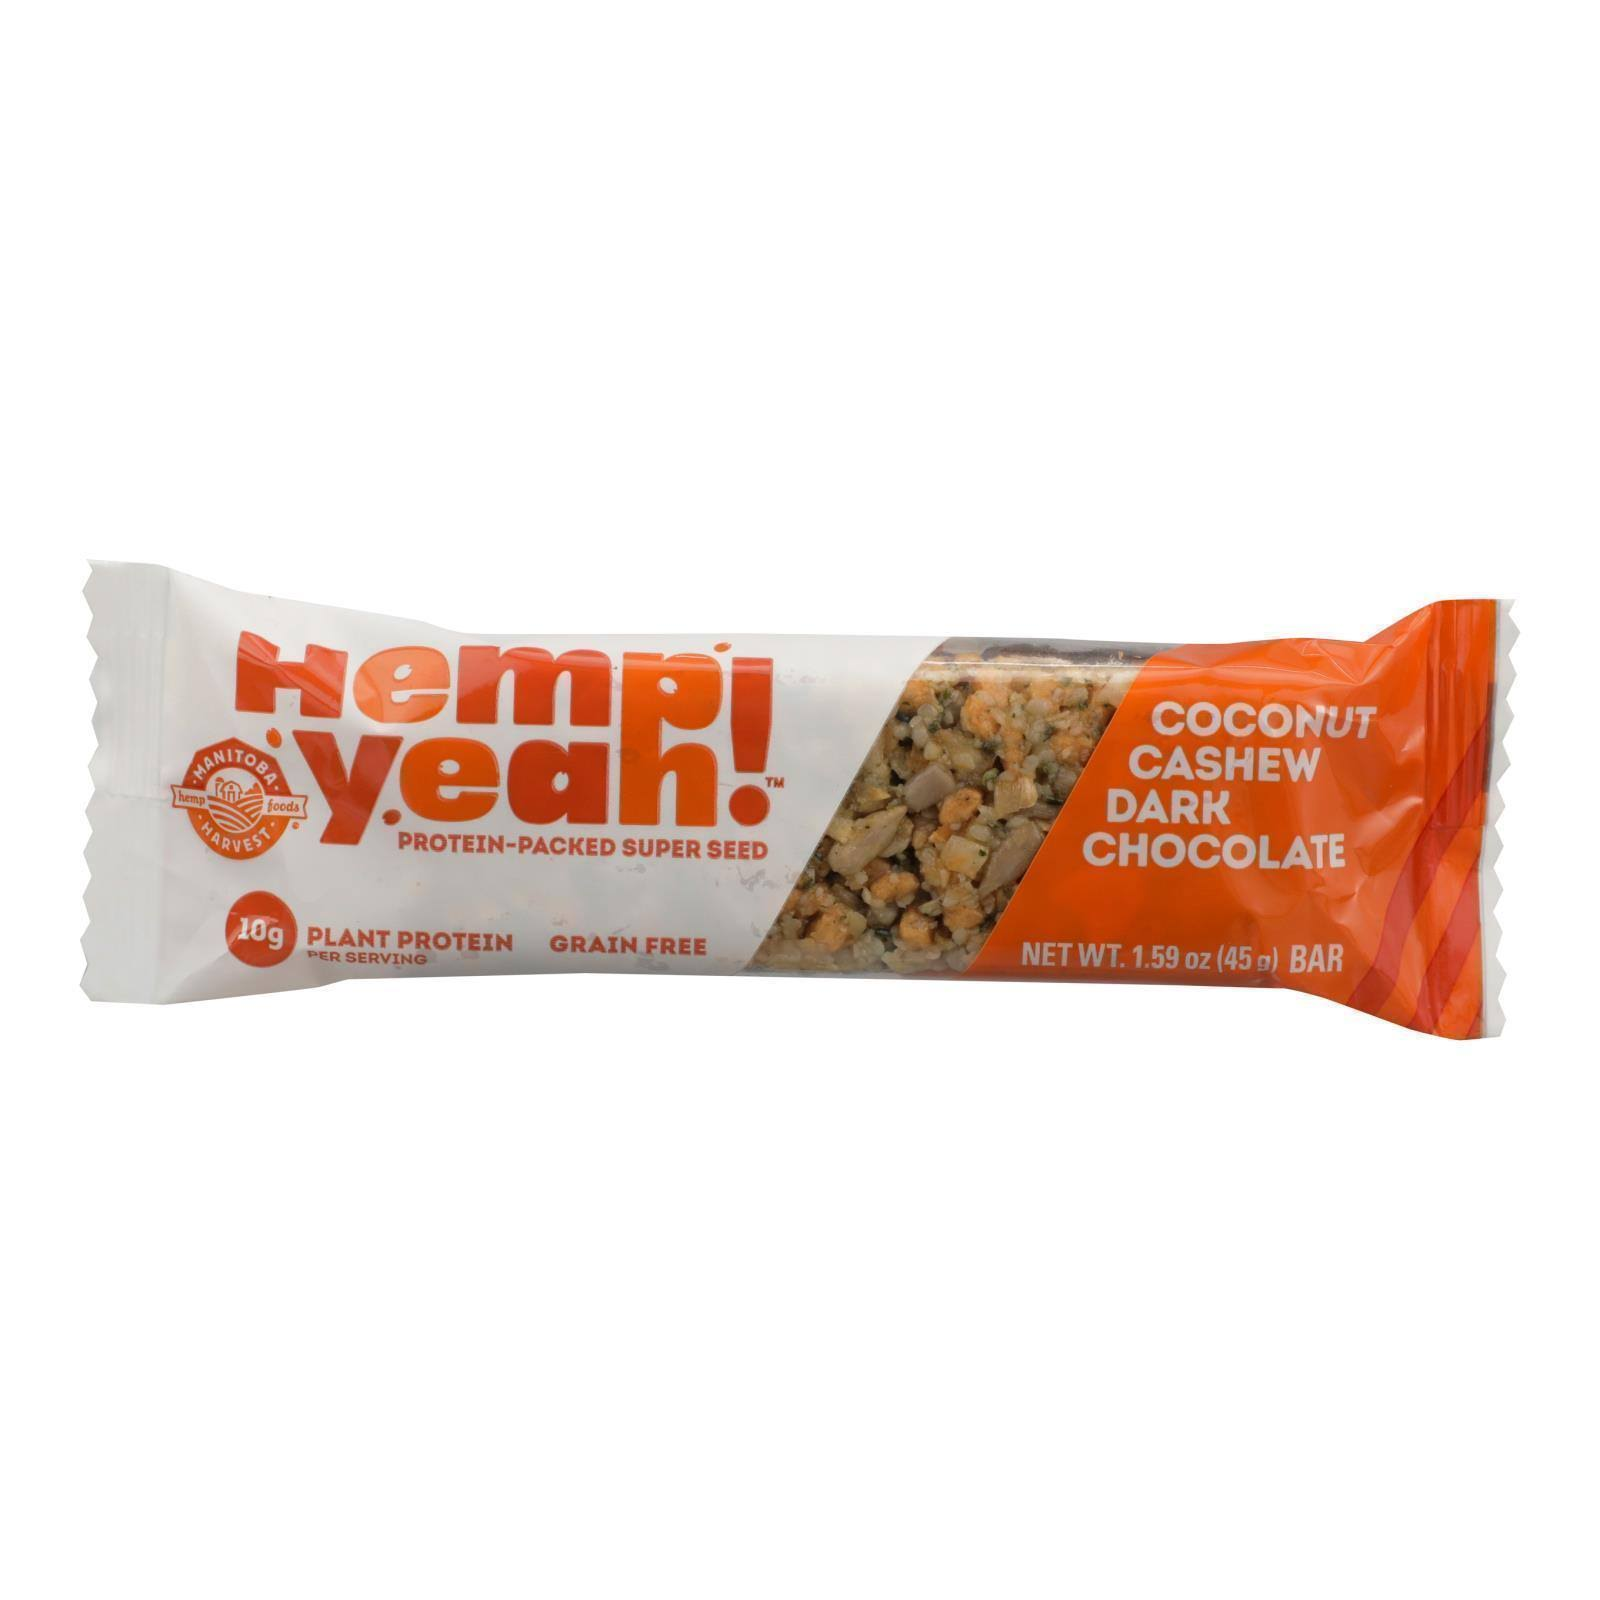 Hemp Yeah Bar, Coconut Cashew Dark Chocolate - 1.59 oz